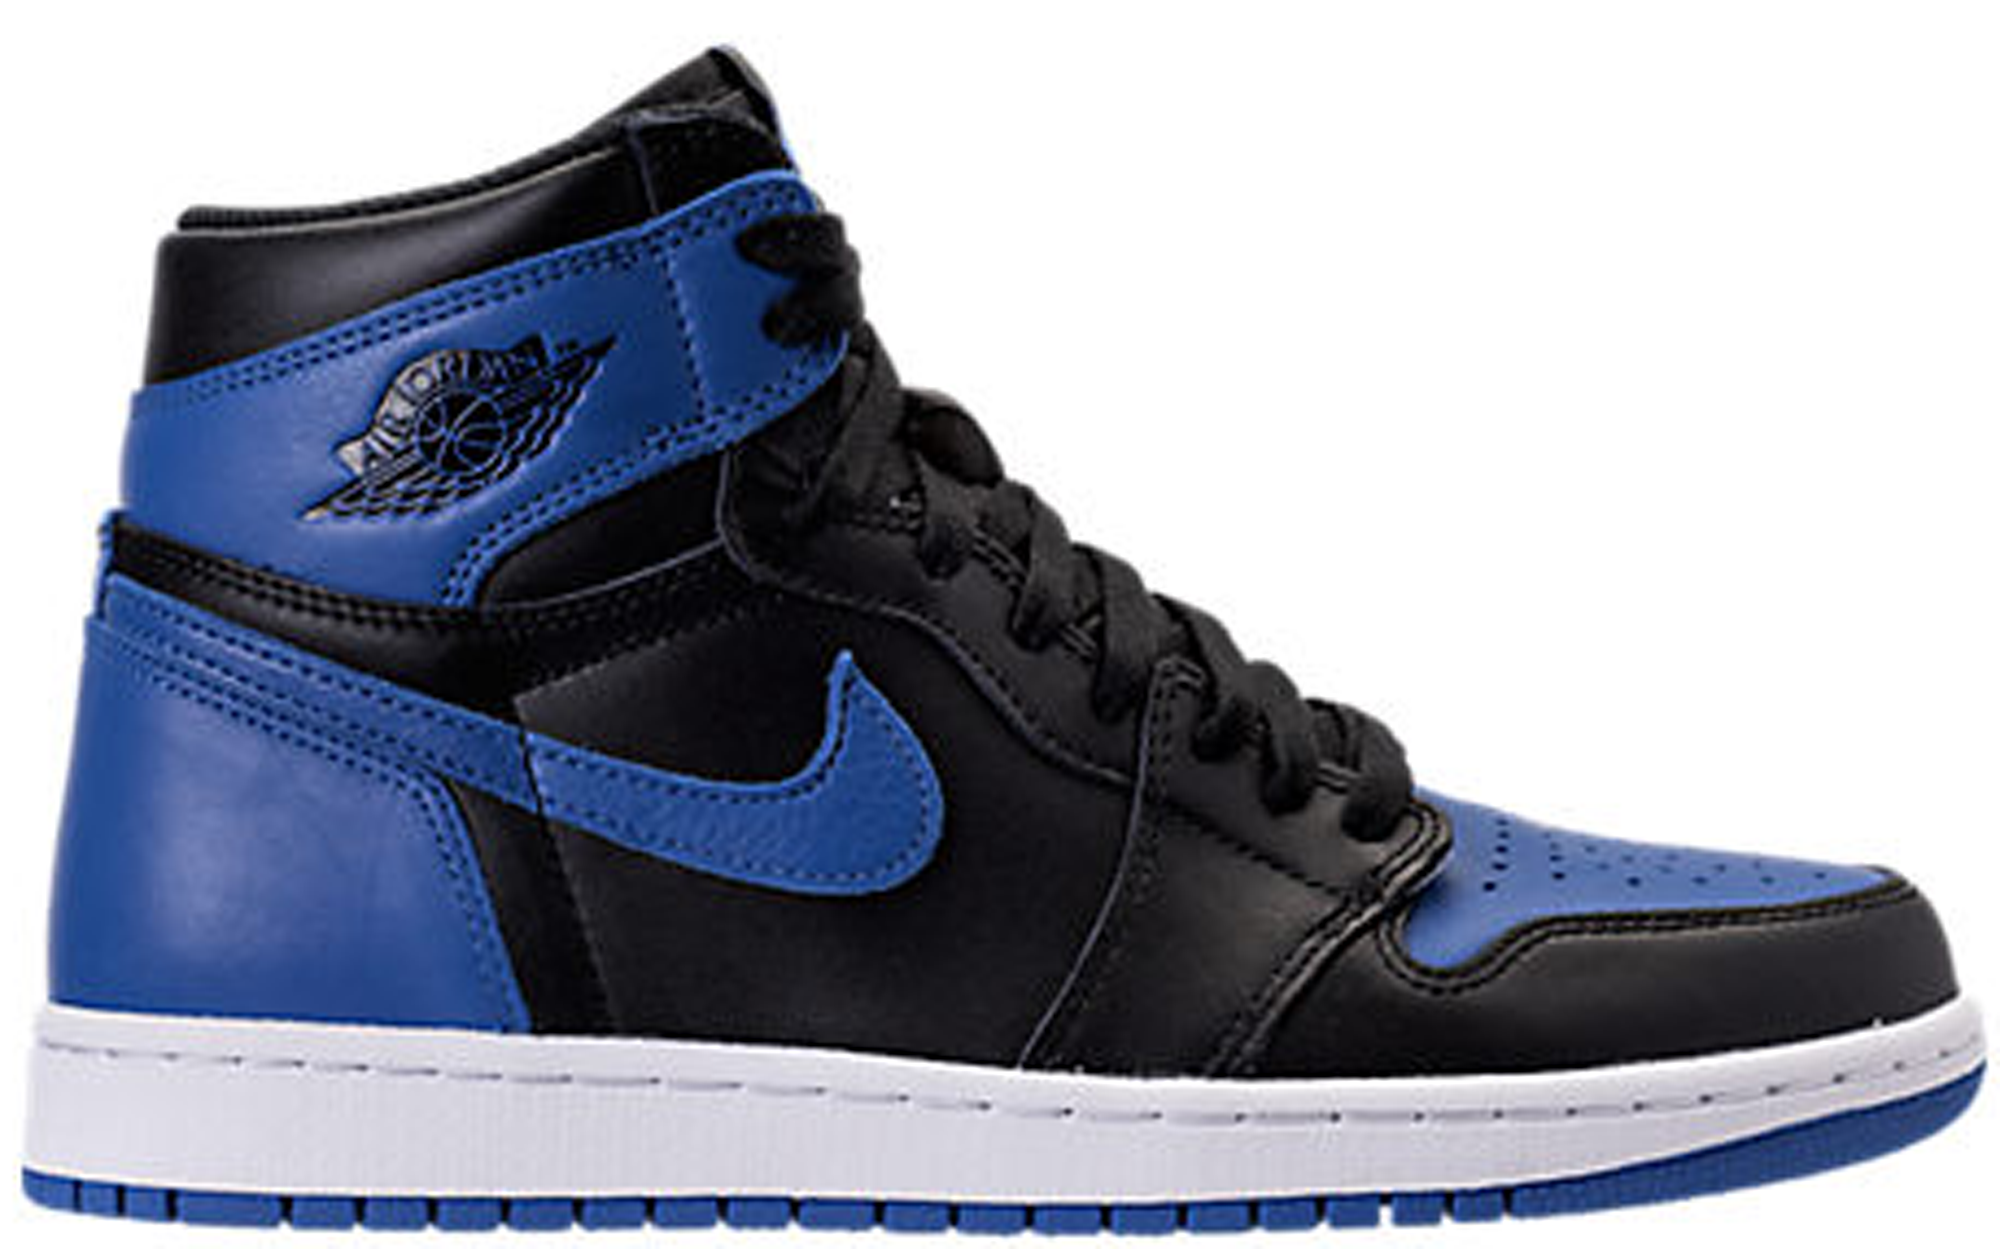 air jordan 1 og high black/royal